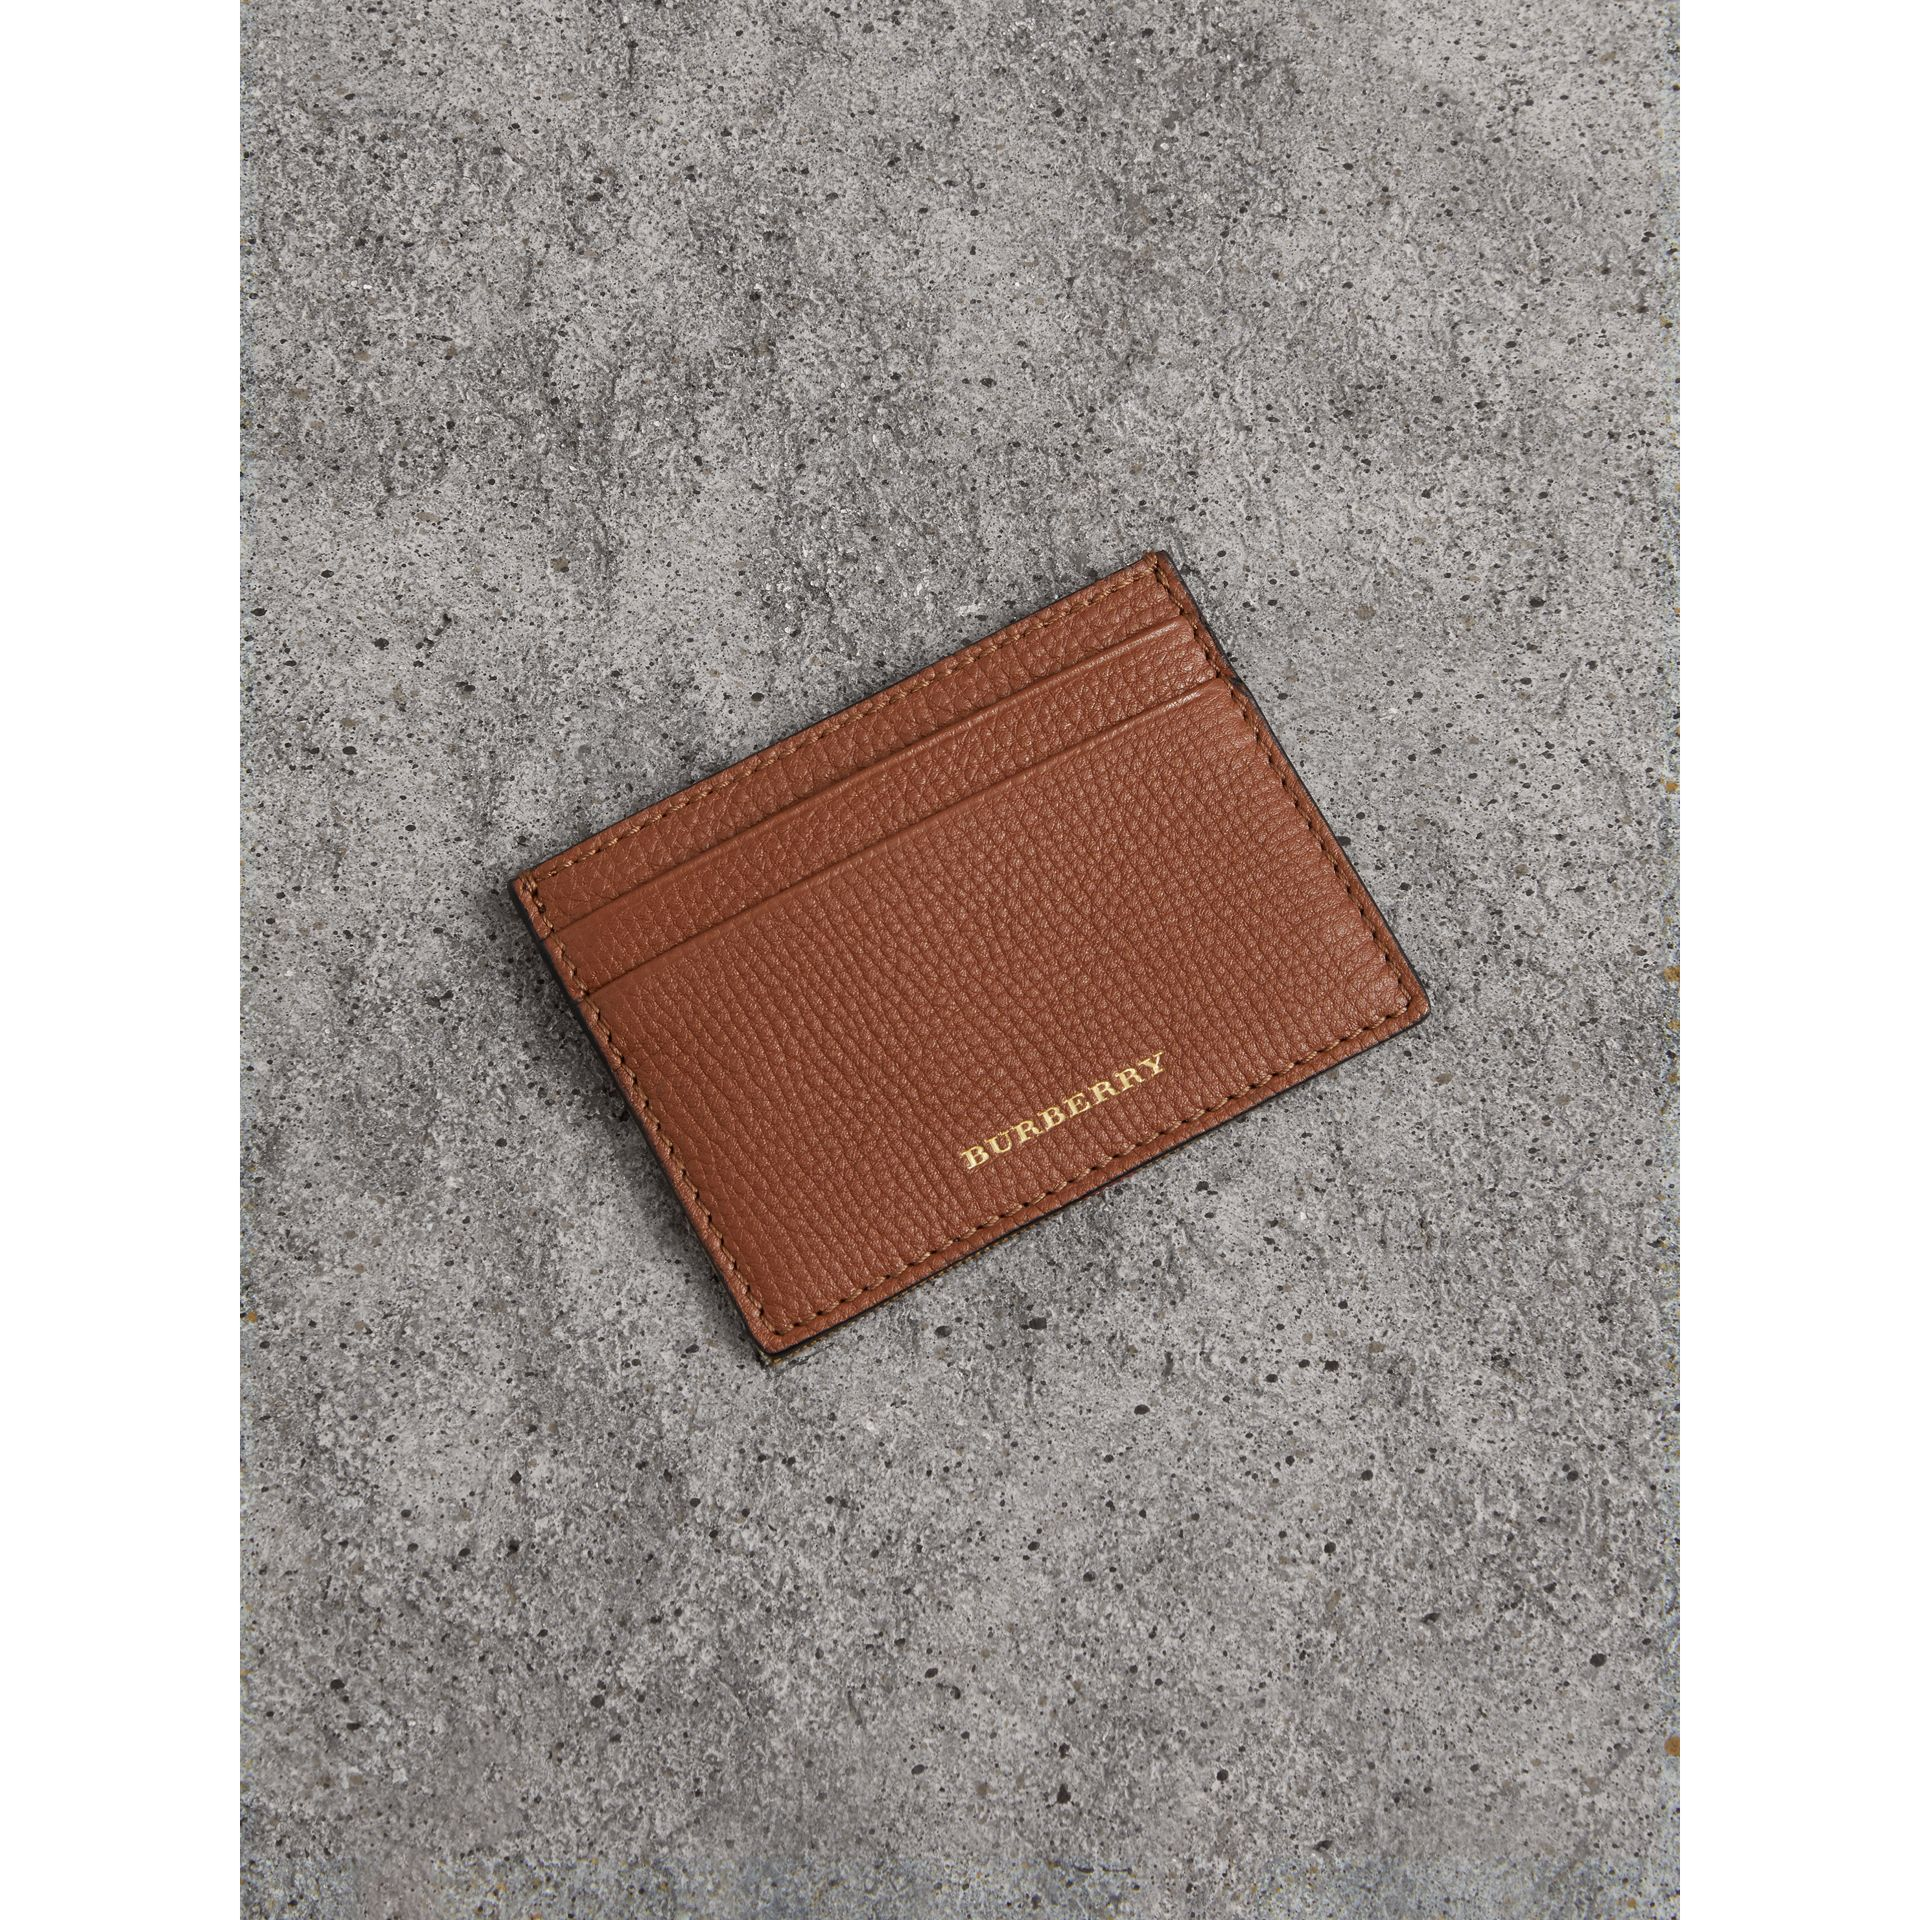 Porte-cartes en coton House check et cuir grainé (Brun Noisette) - Homme | Burberry - photo de la galerie 1